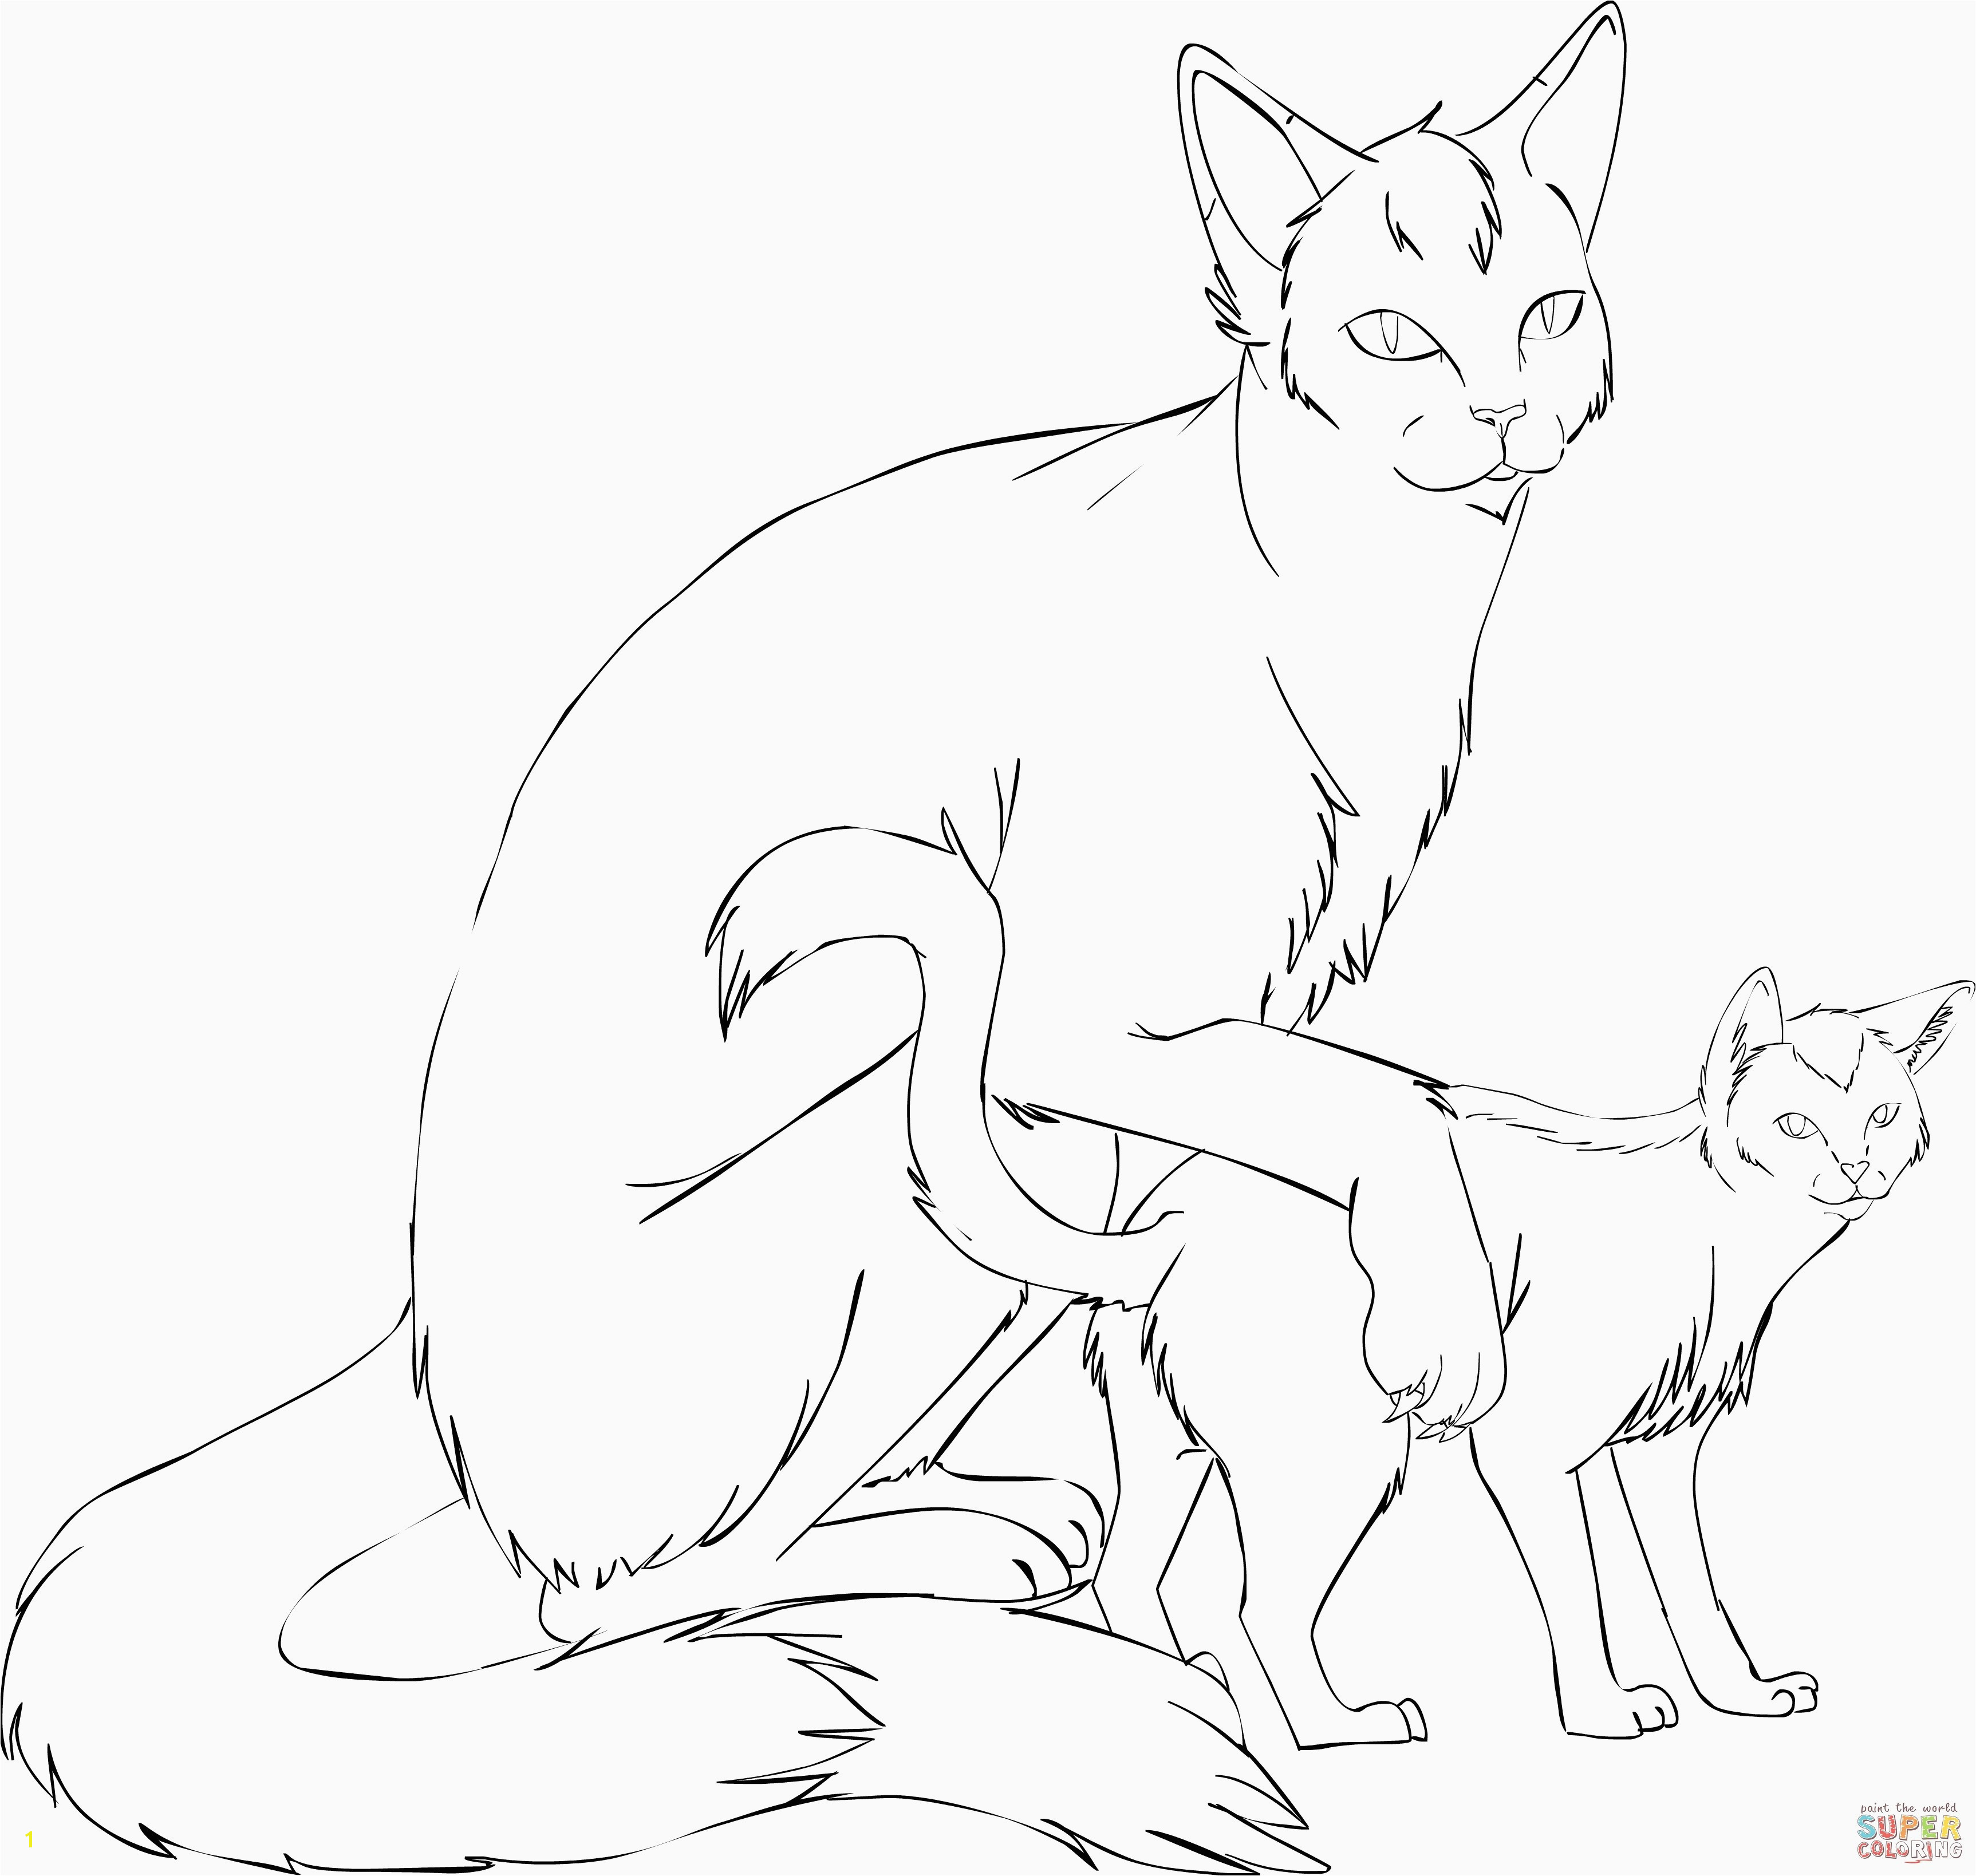 Warrior Cats Clan Coloring Pages Warrior Cats Clan Coloring Pages Best Image Coloring Page